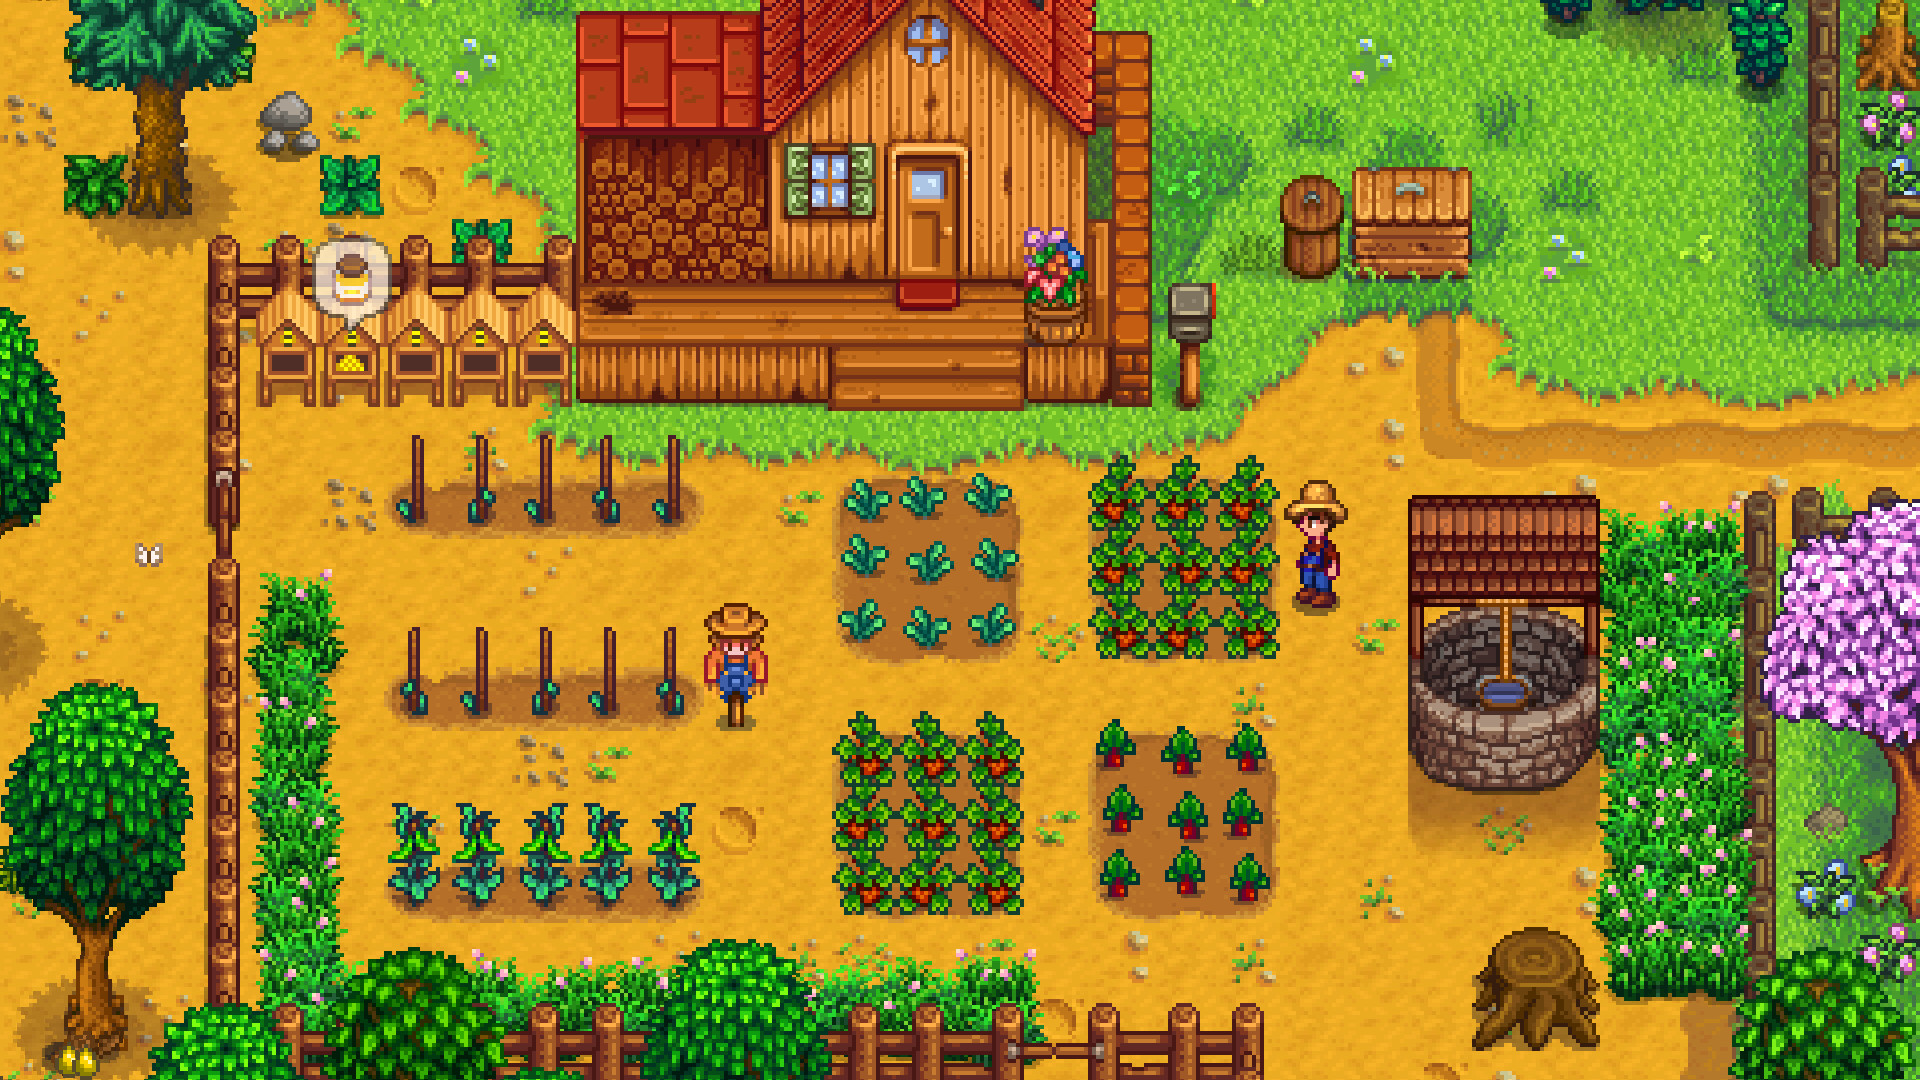 Stardew Valley releases on iOS in two weeks